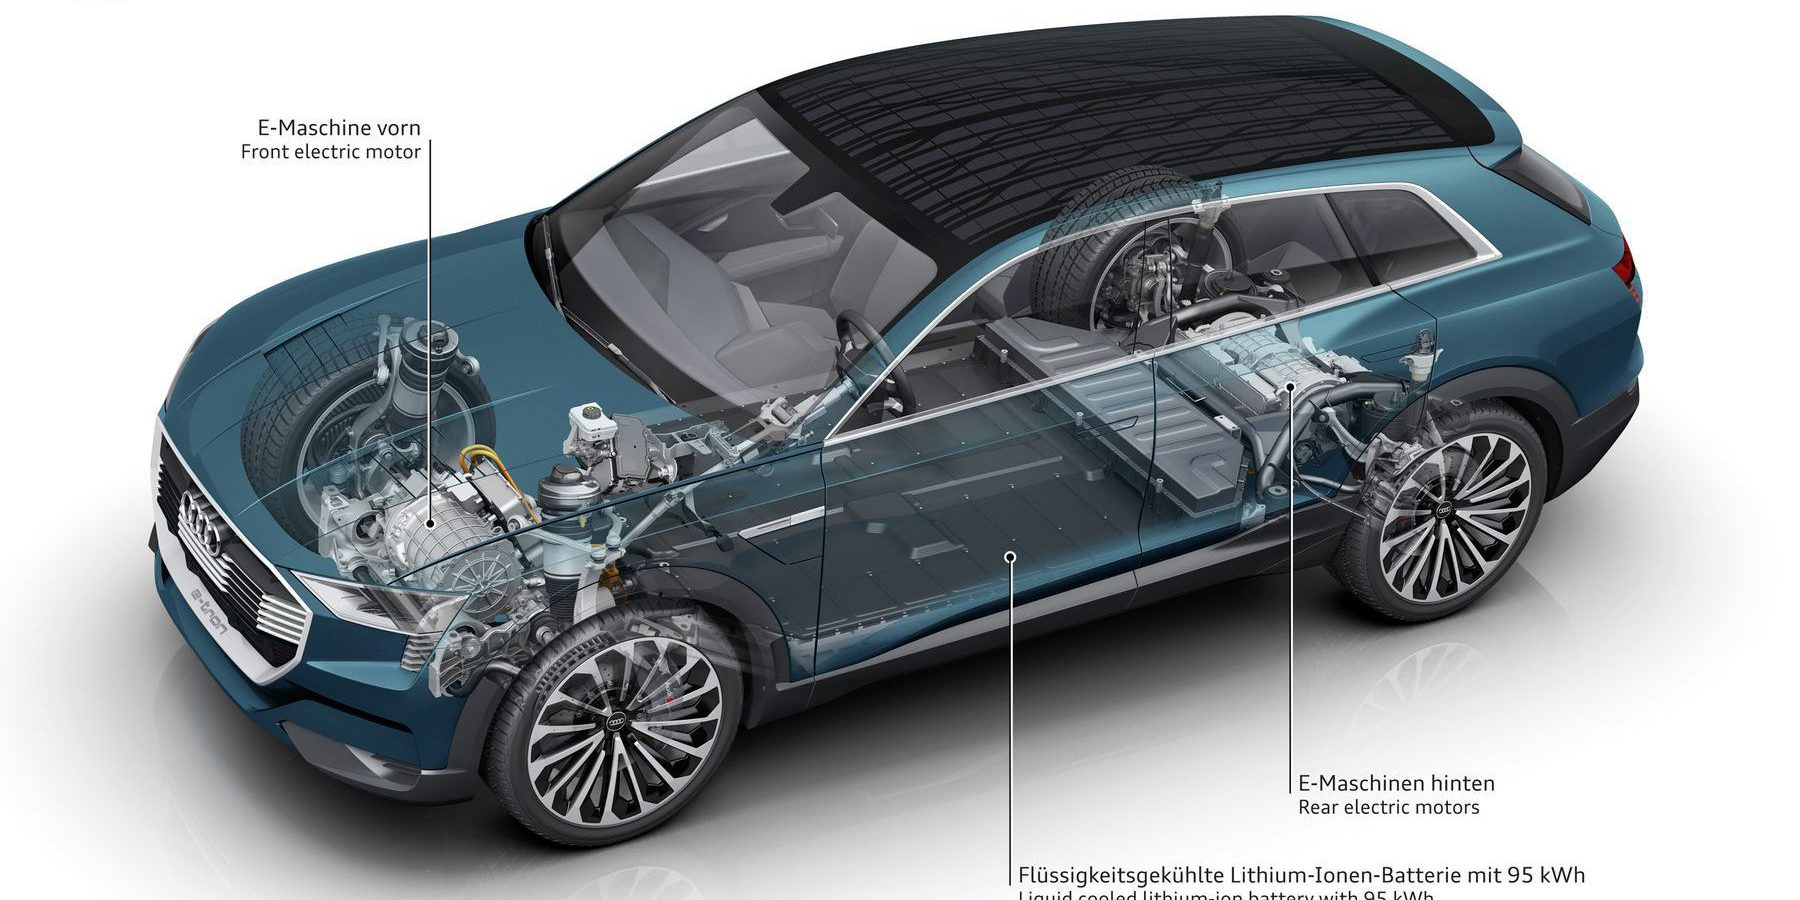 Audi Claims To Be Buying Batteries At 114 Kwh For Its Upcoming Electric Cars Says Cto Electrek